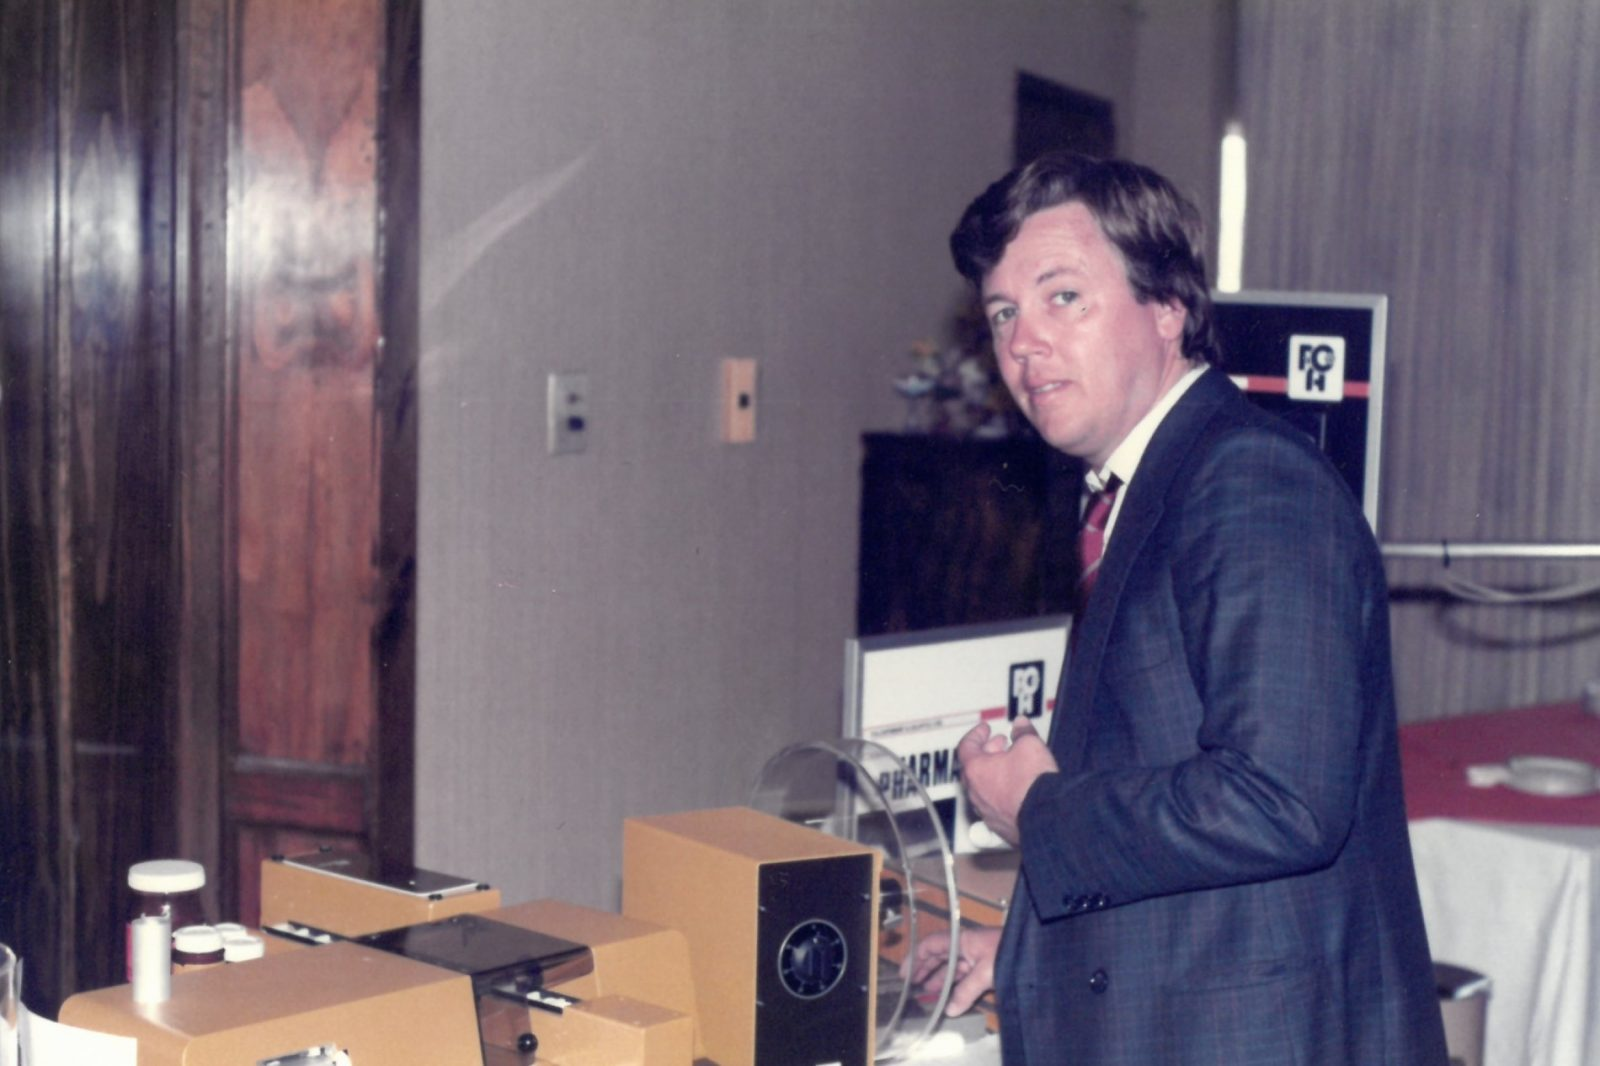 Franz J. Fähler at a product presentation in the early eighties